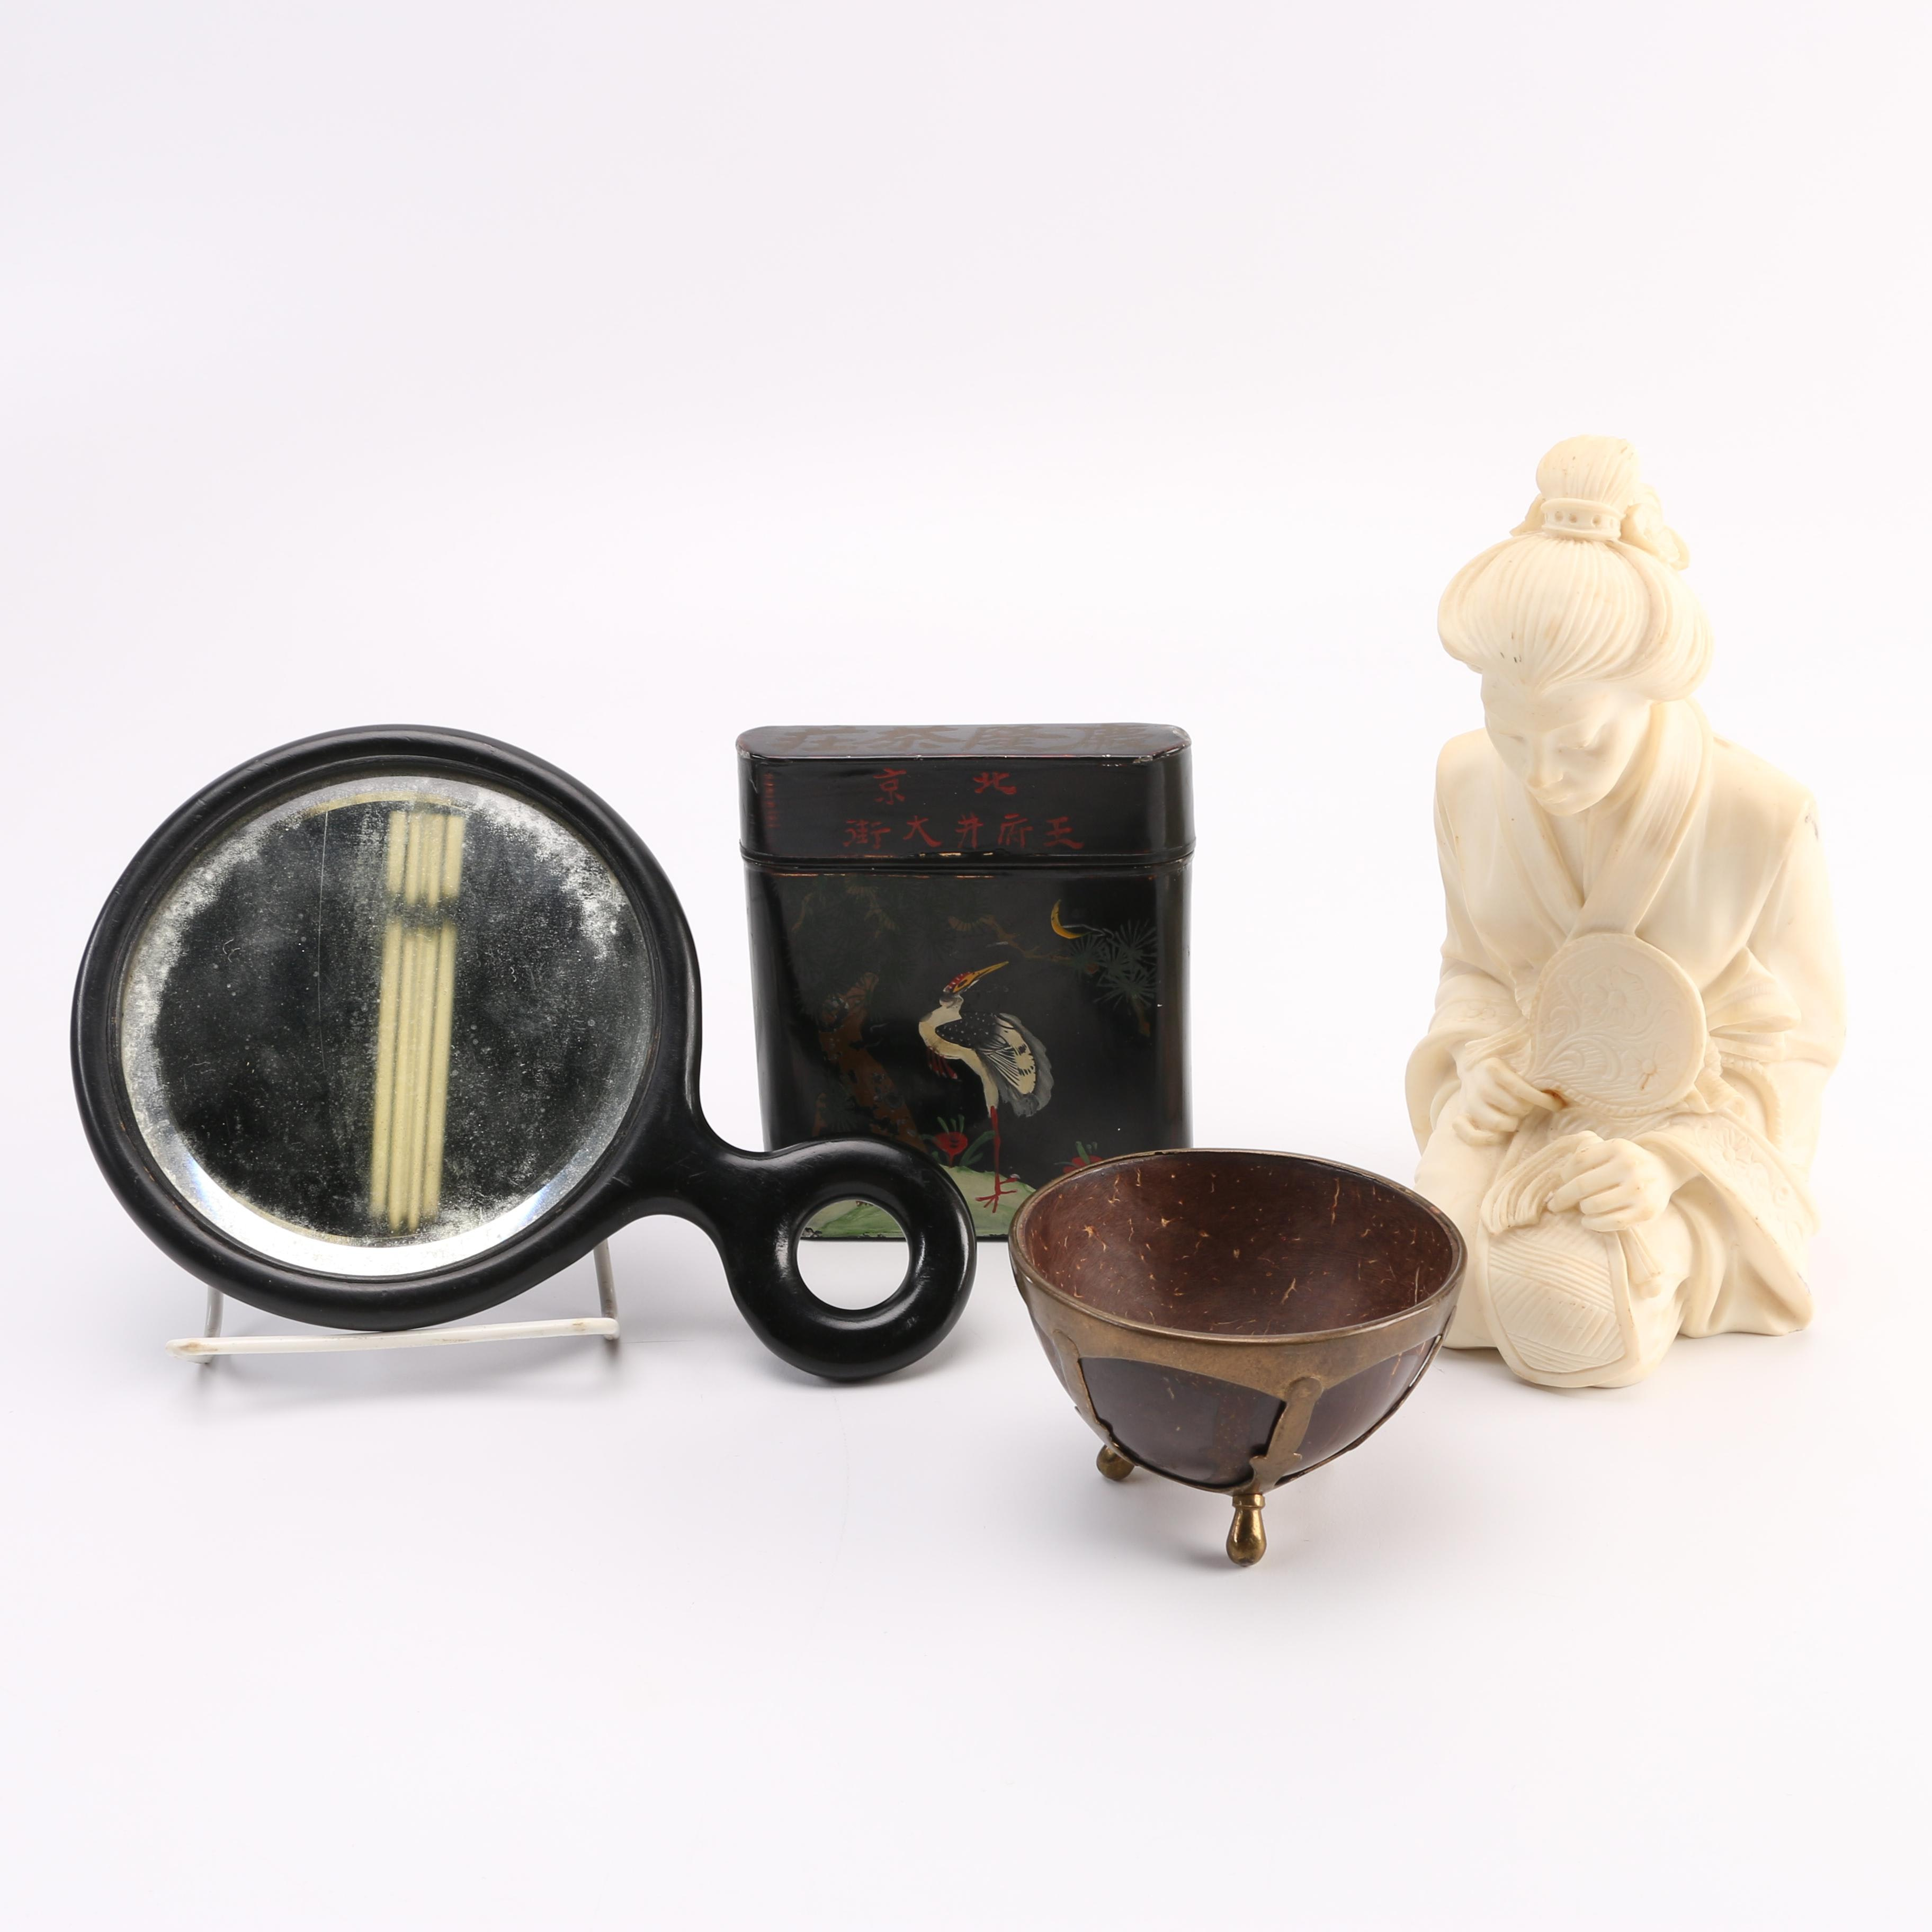 A. Giommelli Japanese Woman Figurine and Other Asian Style Objects